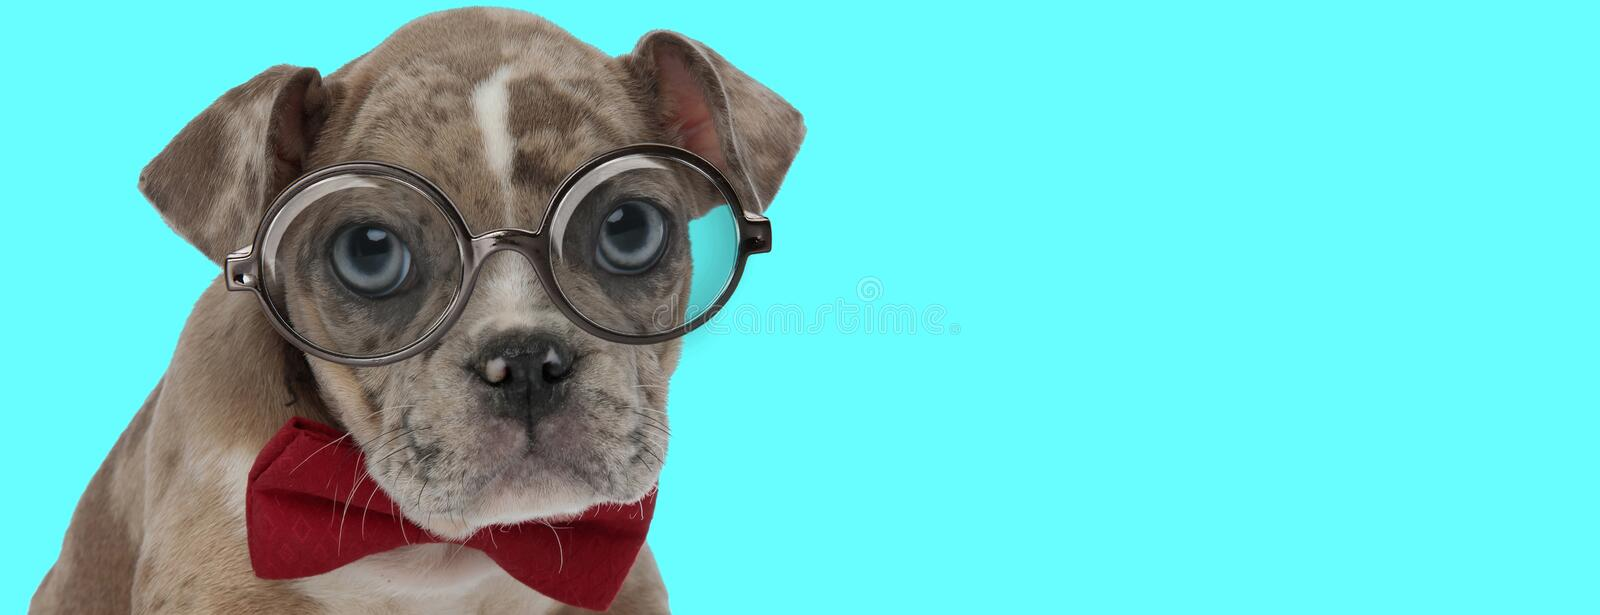 Funny American Bully dog wearing red bowtie and eyeglasses stock images